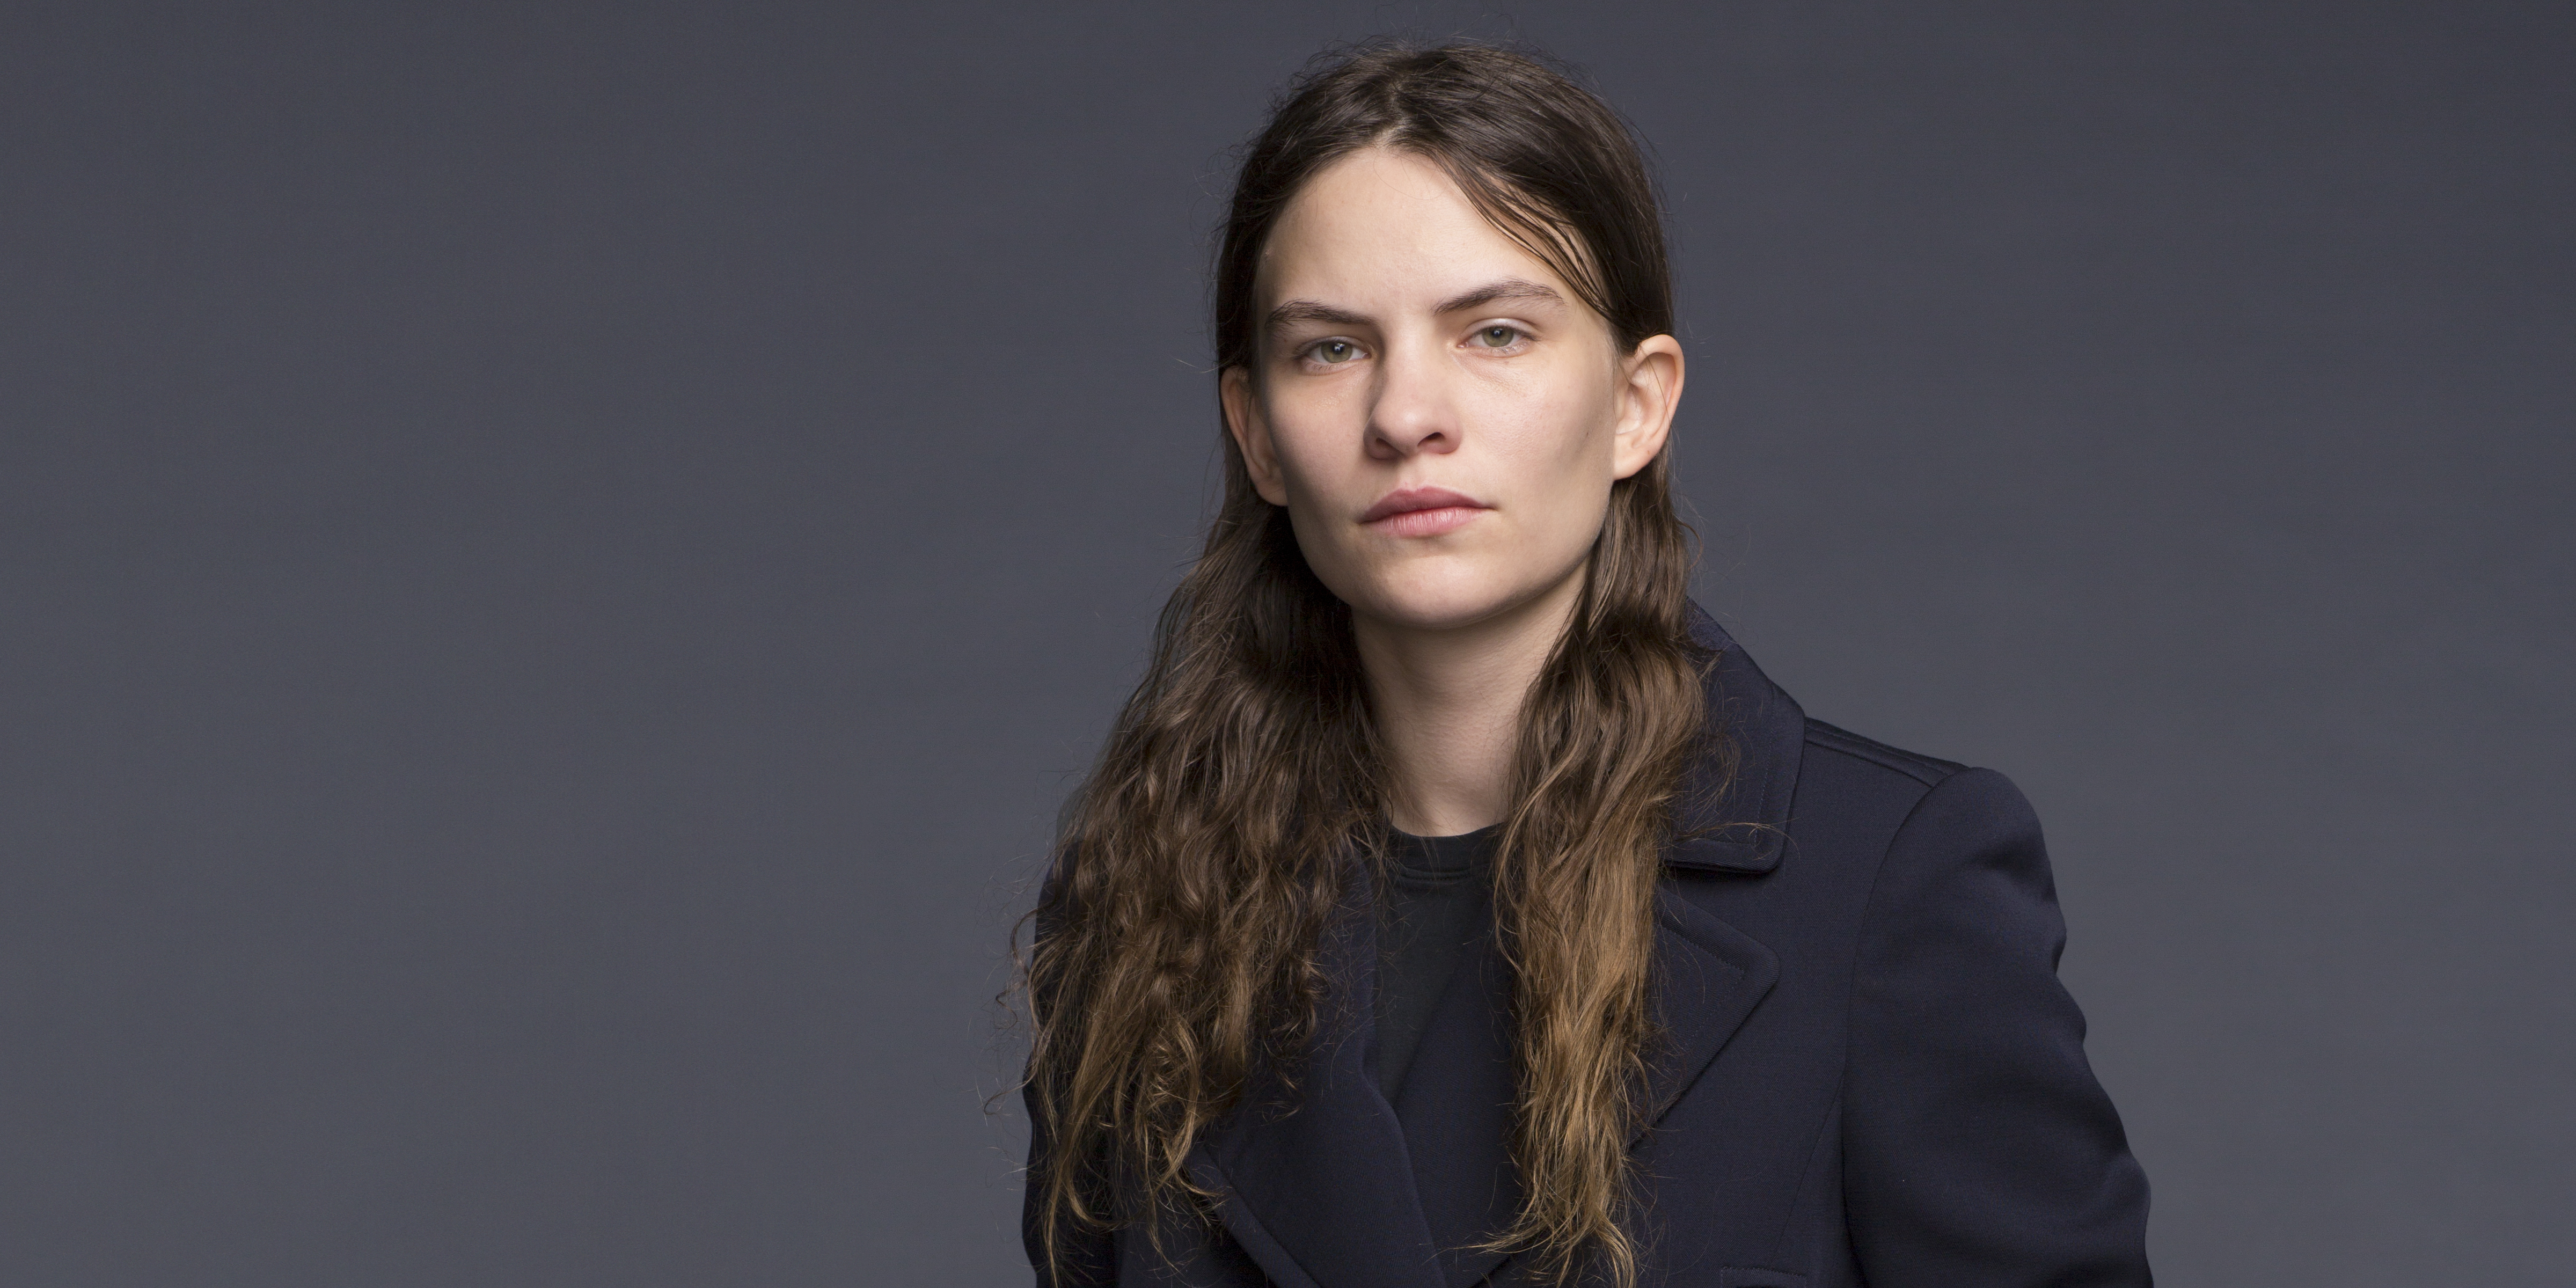 Eliot Sumner nudes (63 images) Boobs, 2019, underwear